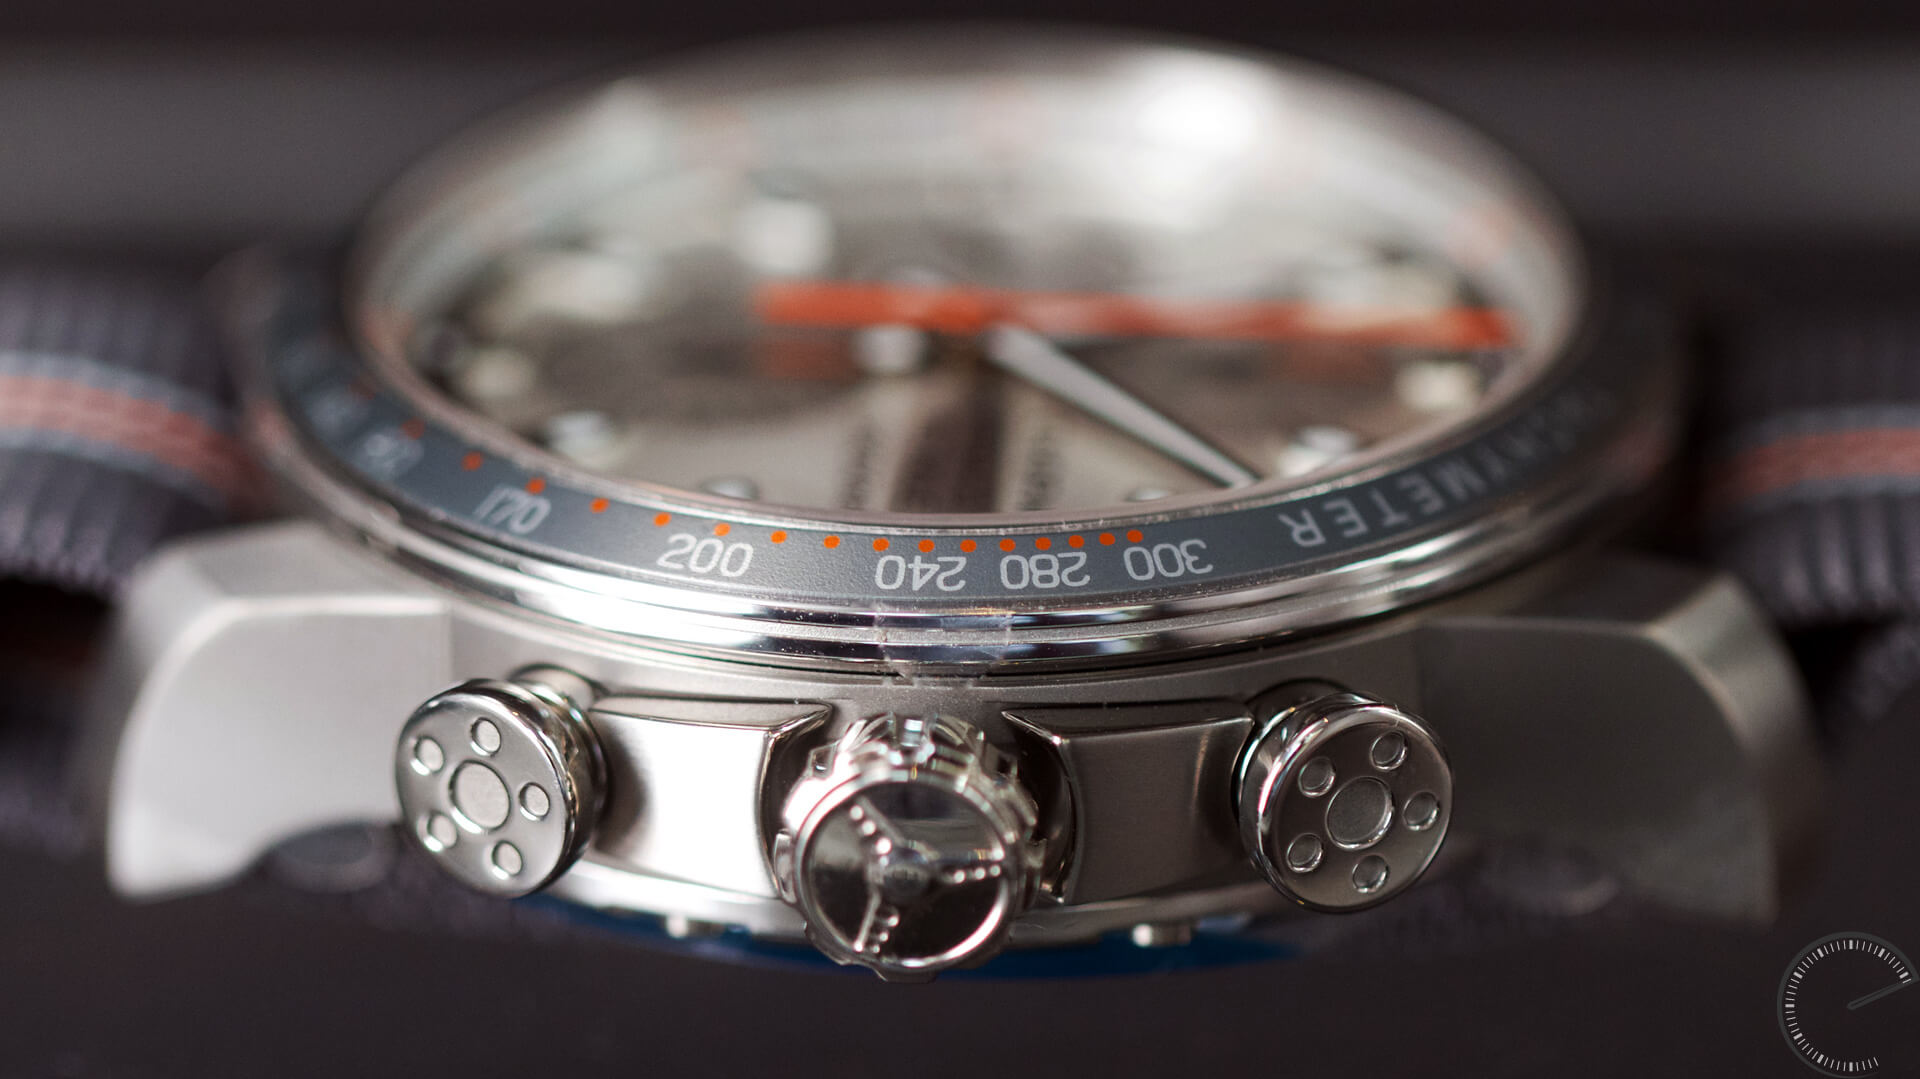 Chopard_GPMH_2016_Race_Edition_Titanium_Steel_crown - ESCAPEMENT MAGAZINE - watch reviews by Angus Davies